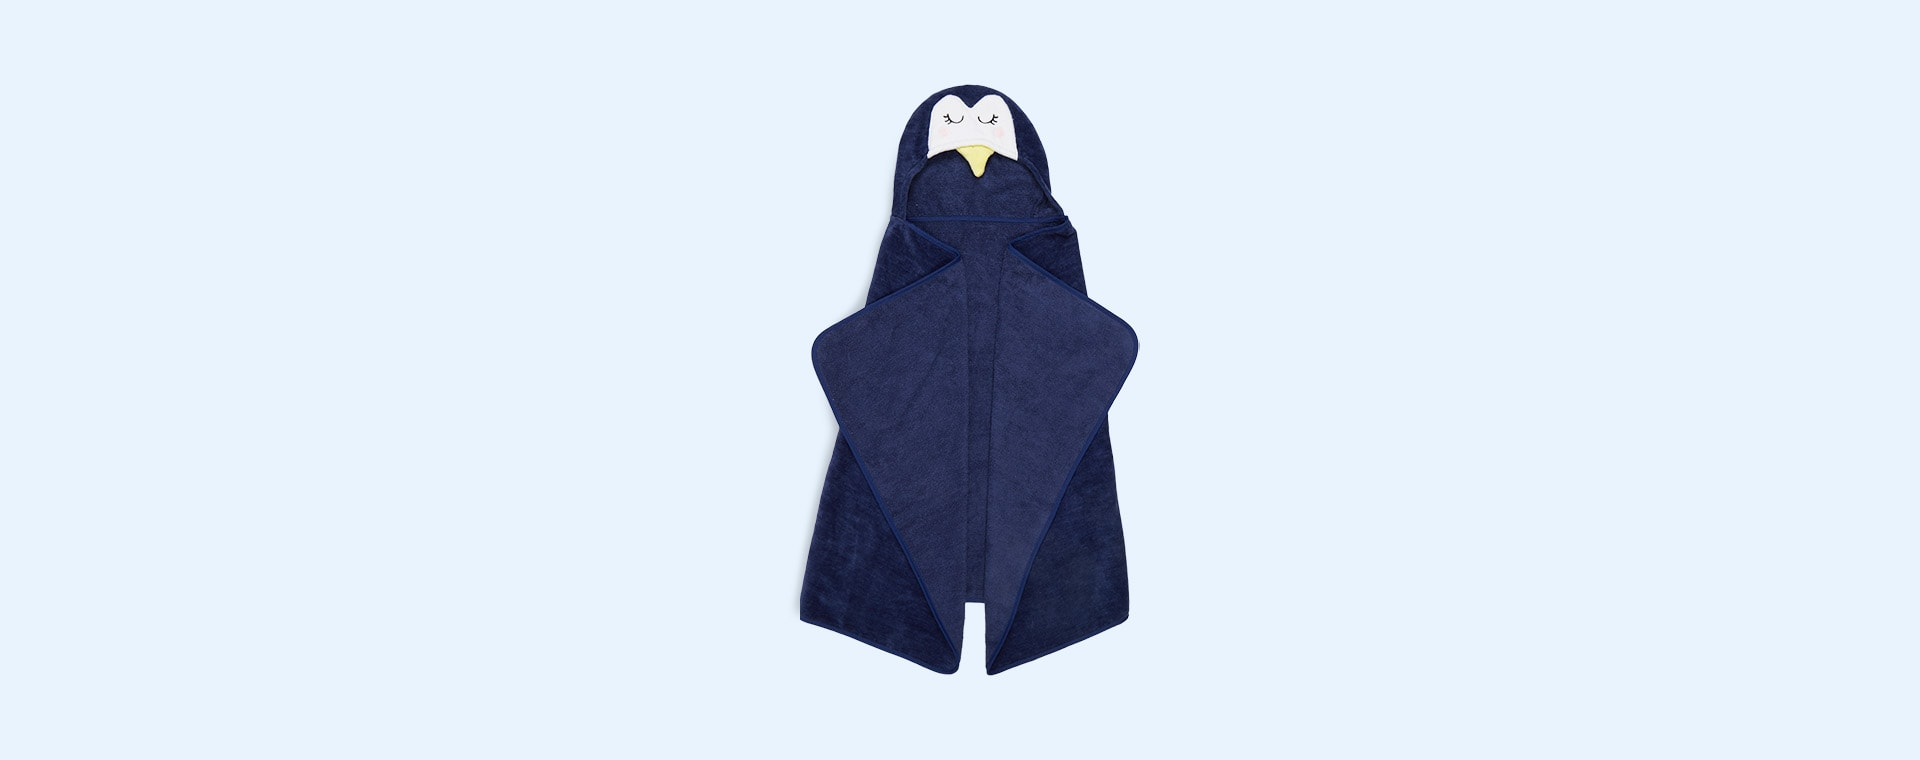 Penguin Sunnylife Kids Hooded Bath Towel